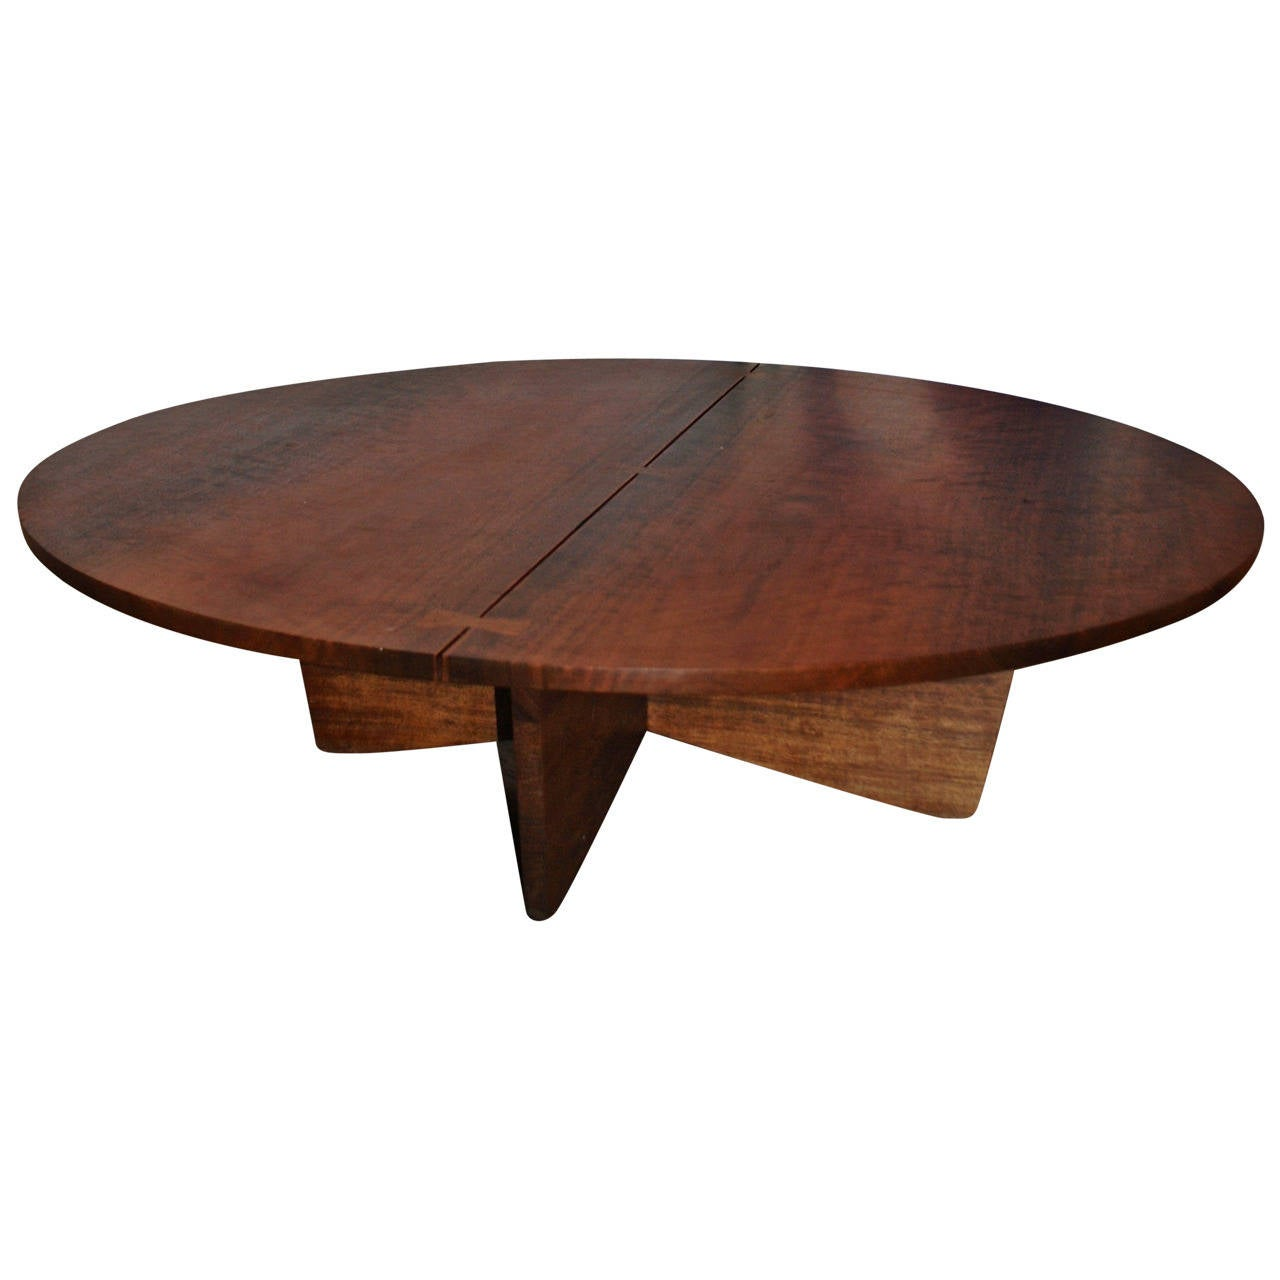 Nakashima Table george nakashima coffee and cocktail tables - 28 for sale at 1stdibs